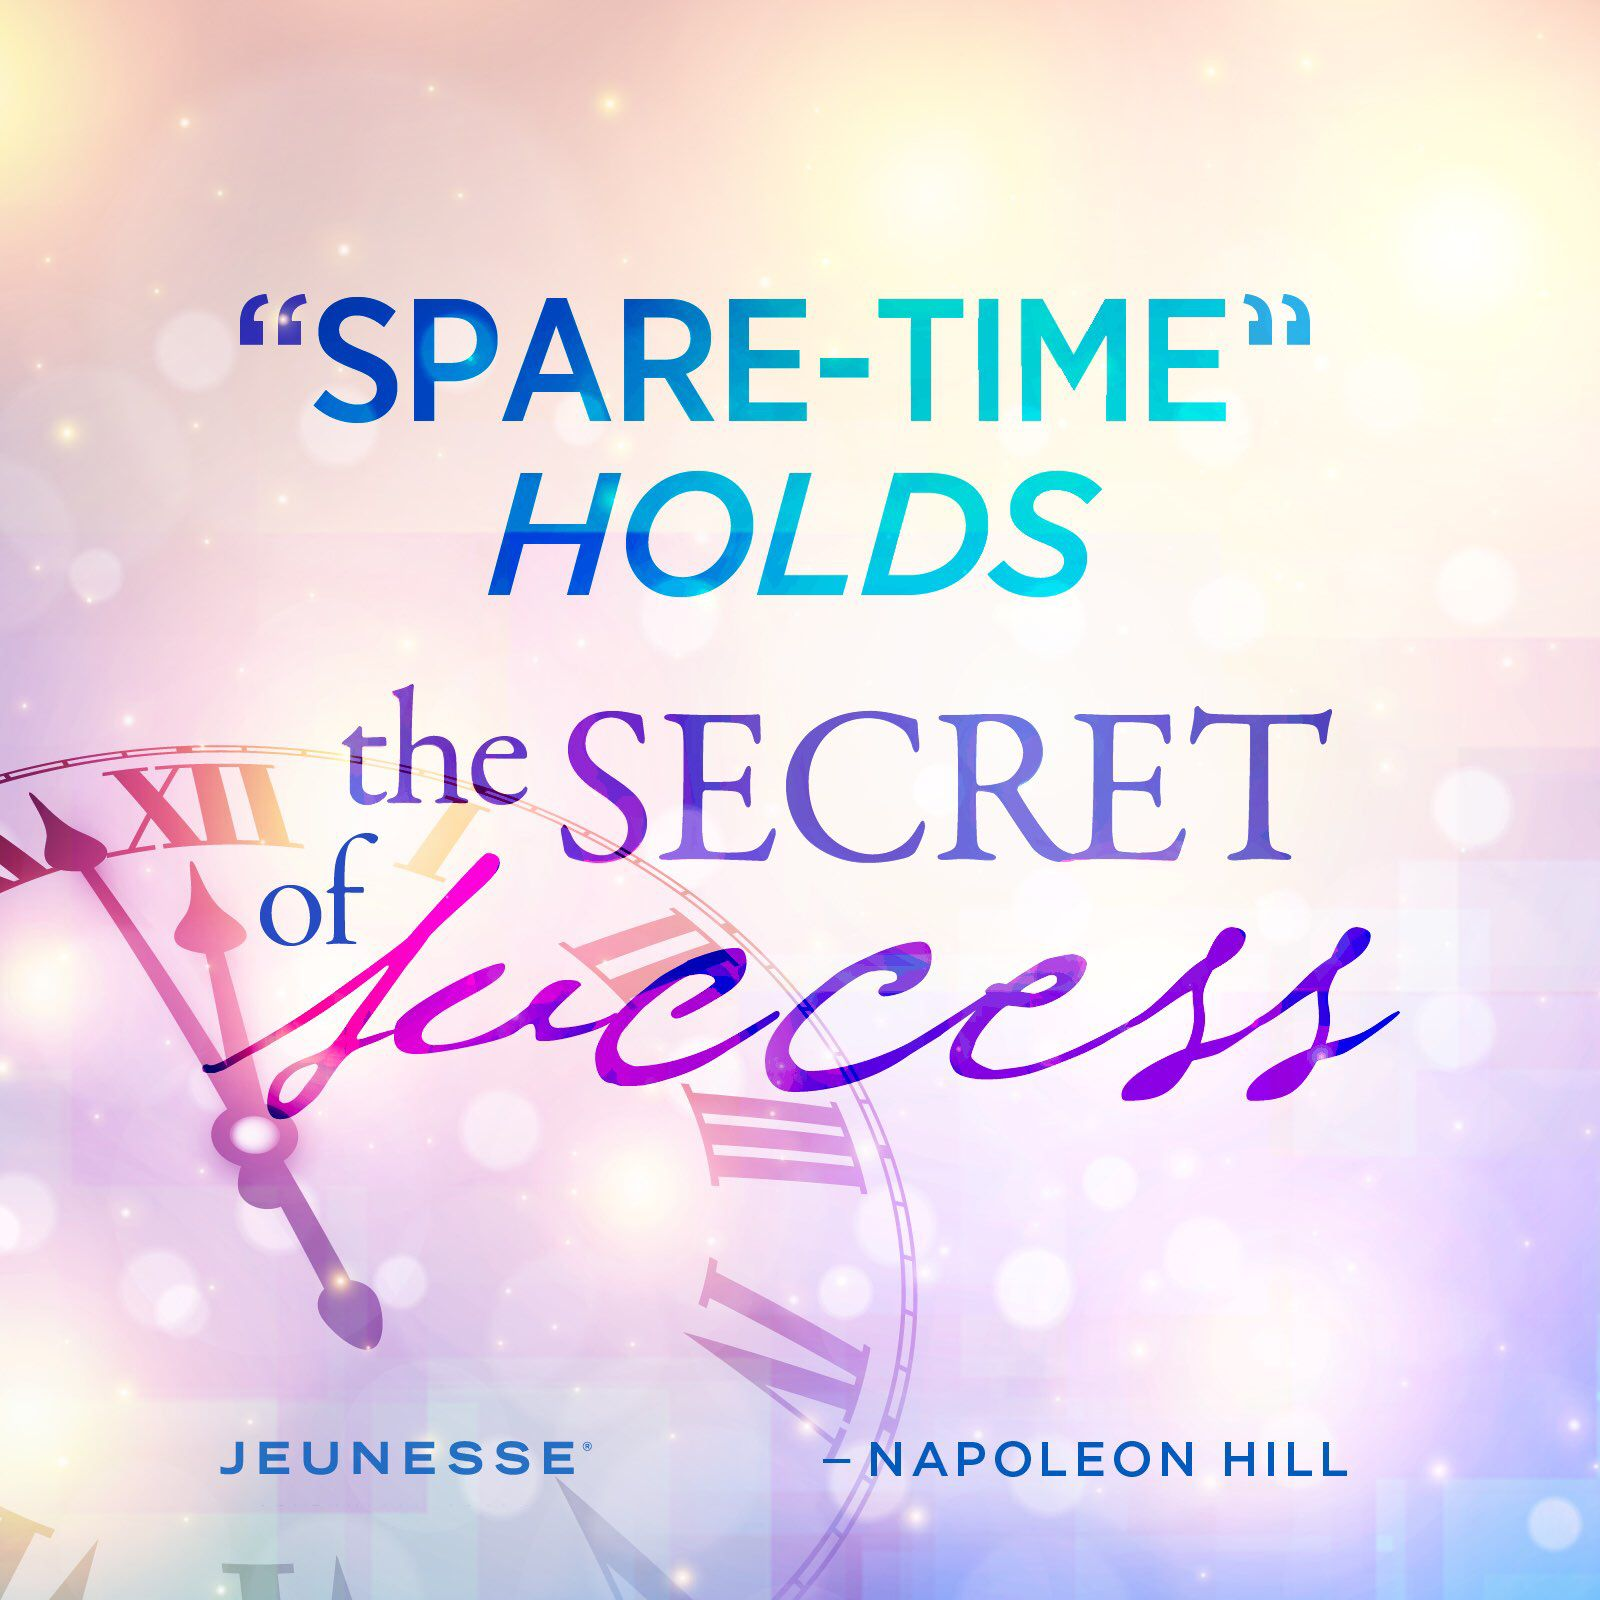 Spare-time holds the secret of success.  -Napoleon Hill